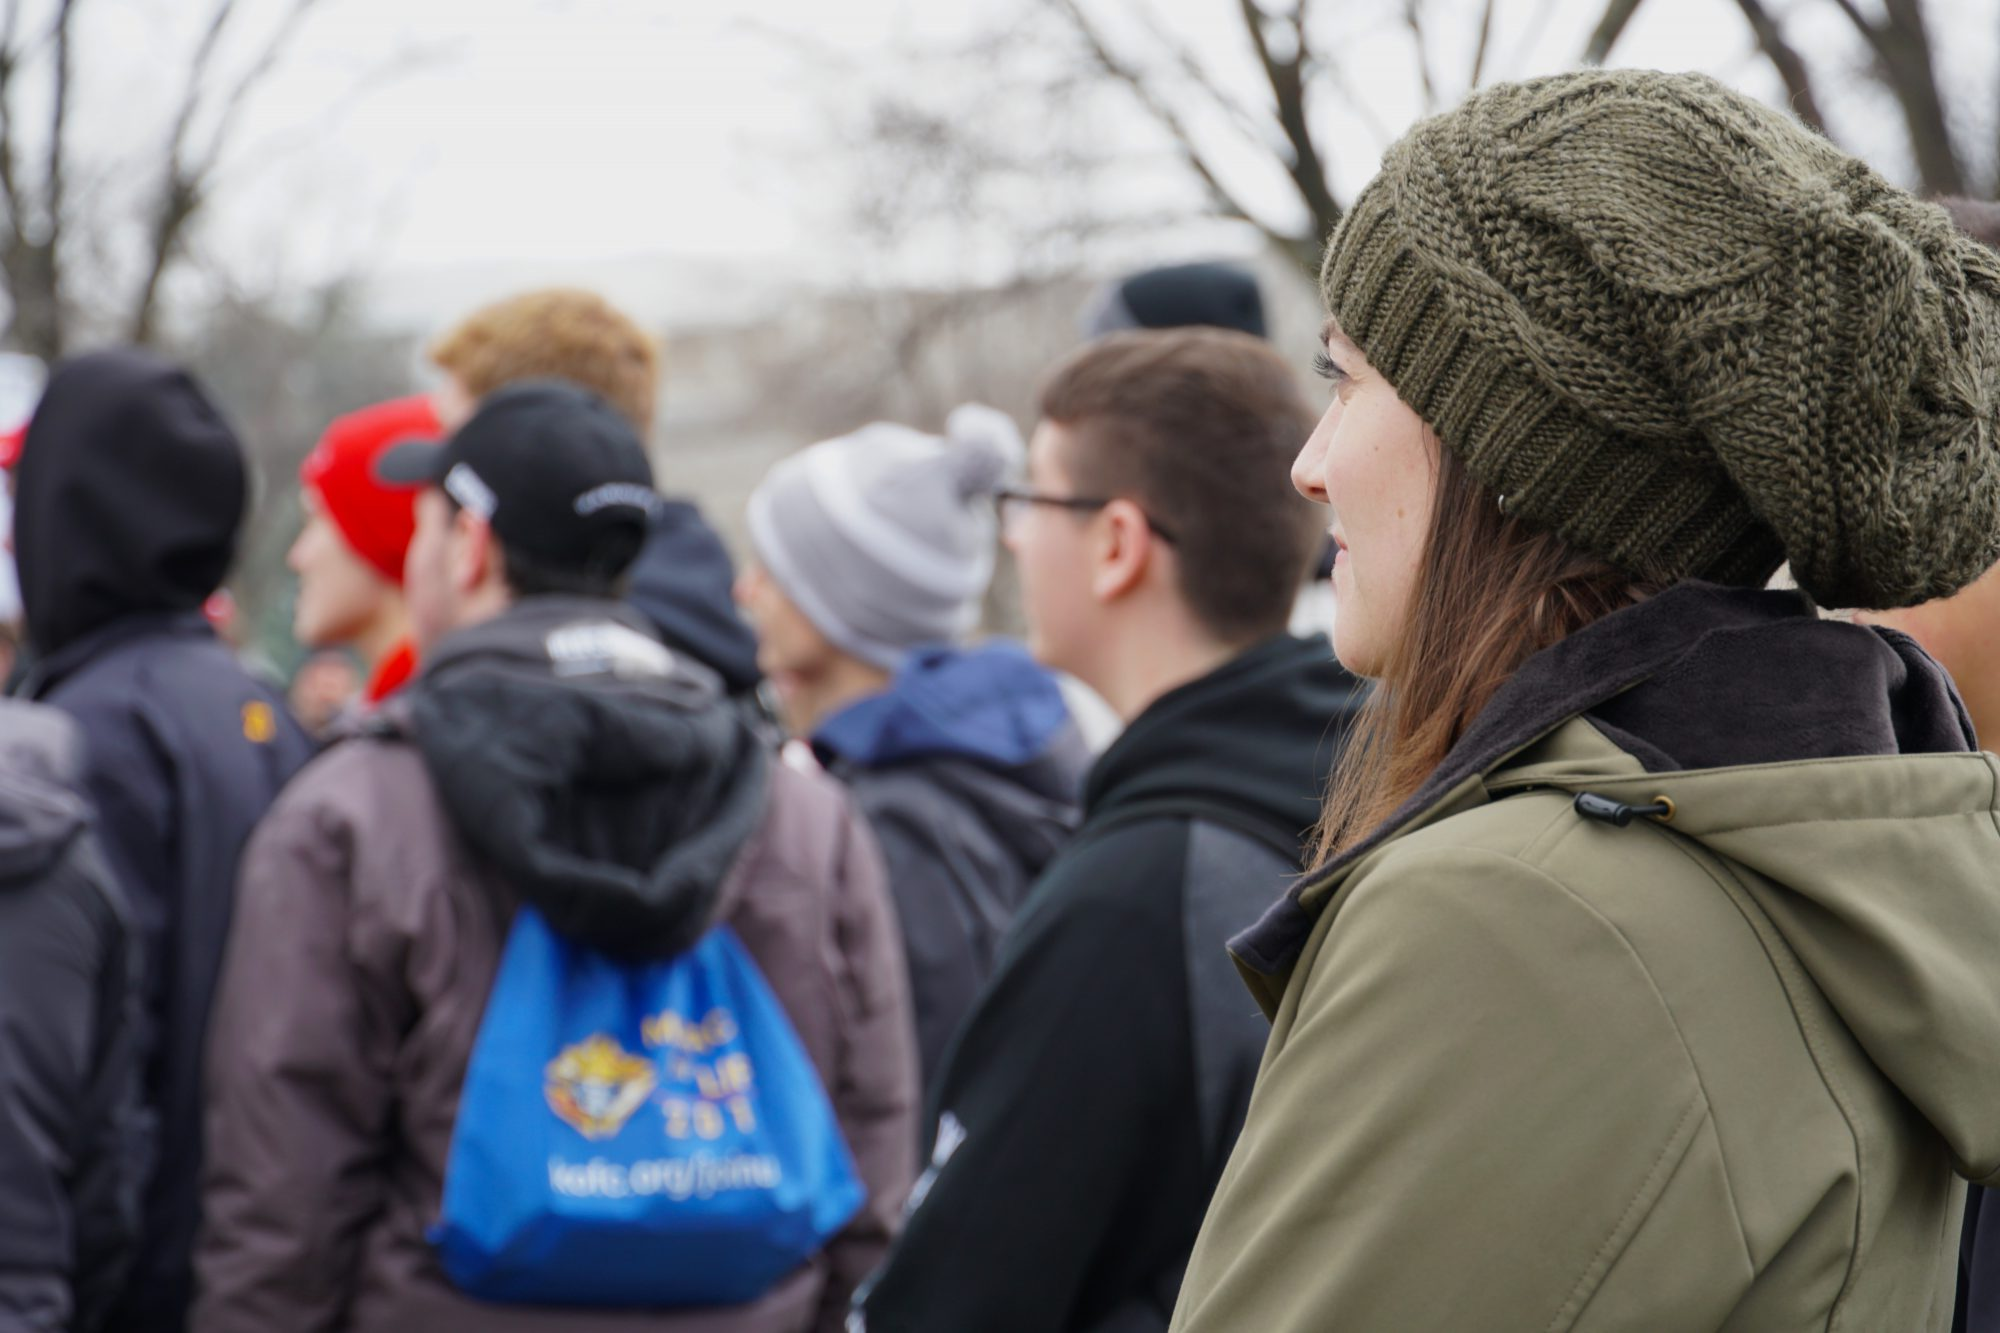 A woman listens to anti-abortion speakers at the March for Life rally. (Ester Wells/MNS)